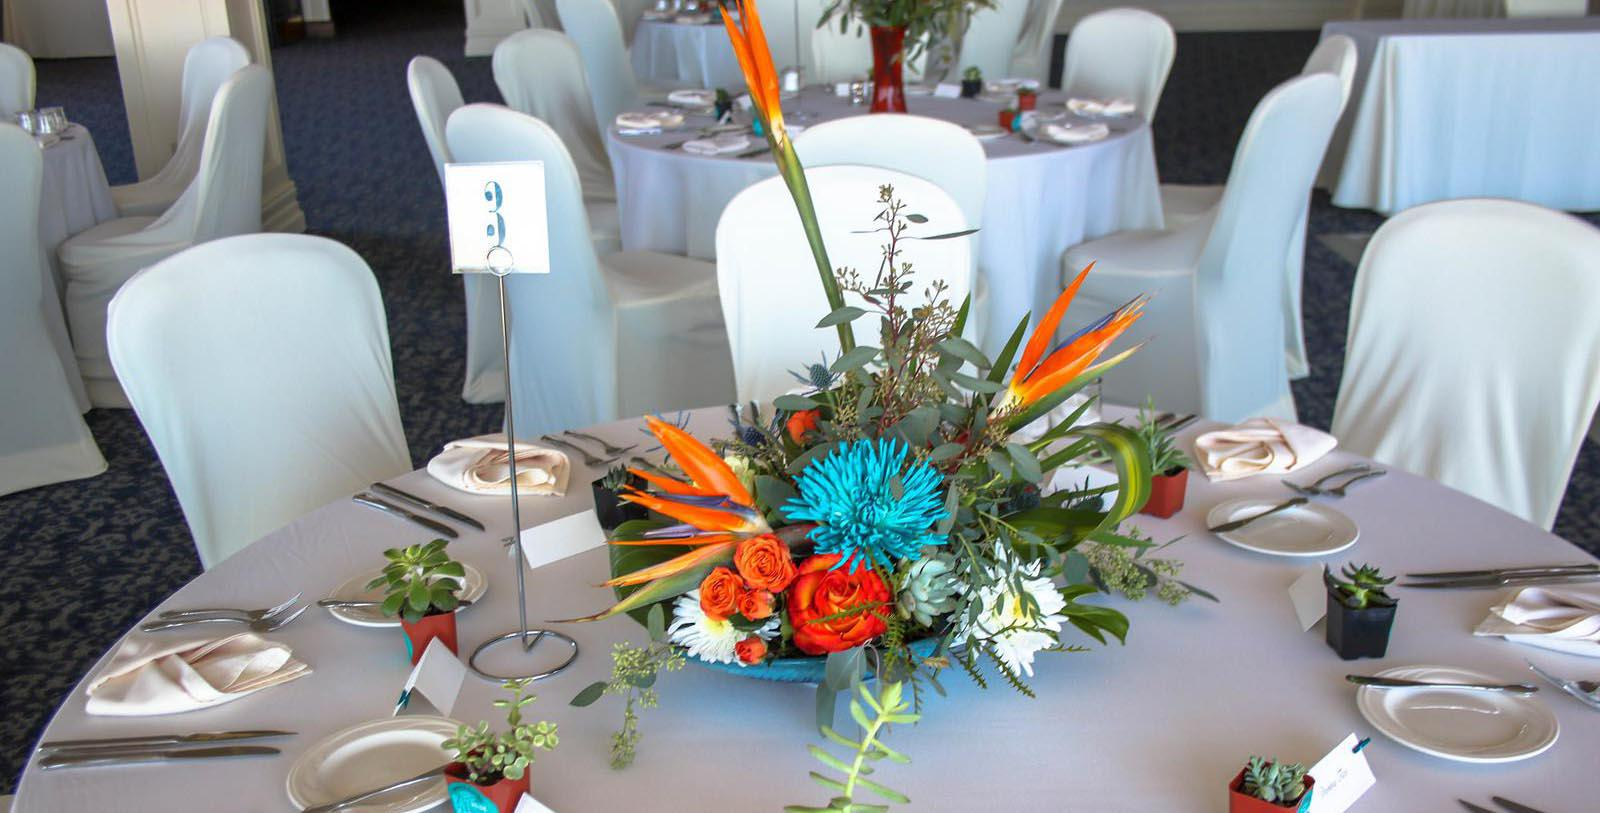 Image of Flower Arrangement on Table St. James Hotel, 1875, Member of Historic Hotels of America, in Red Wing, Minnesota, Experience